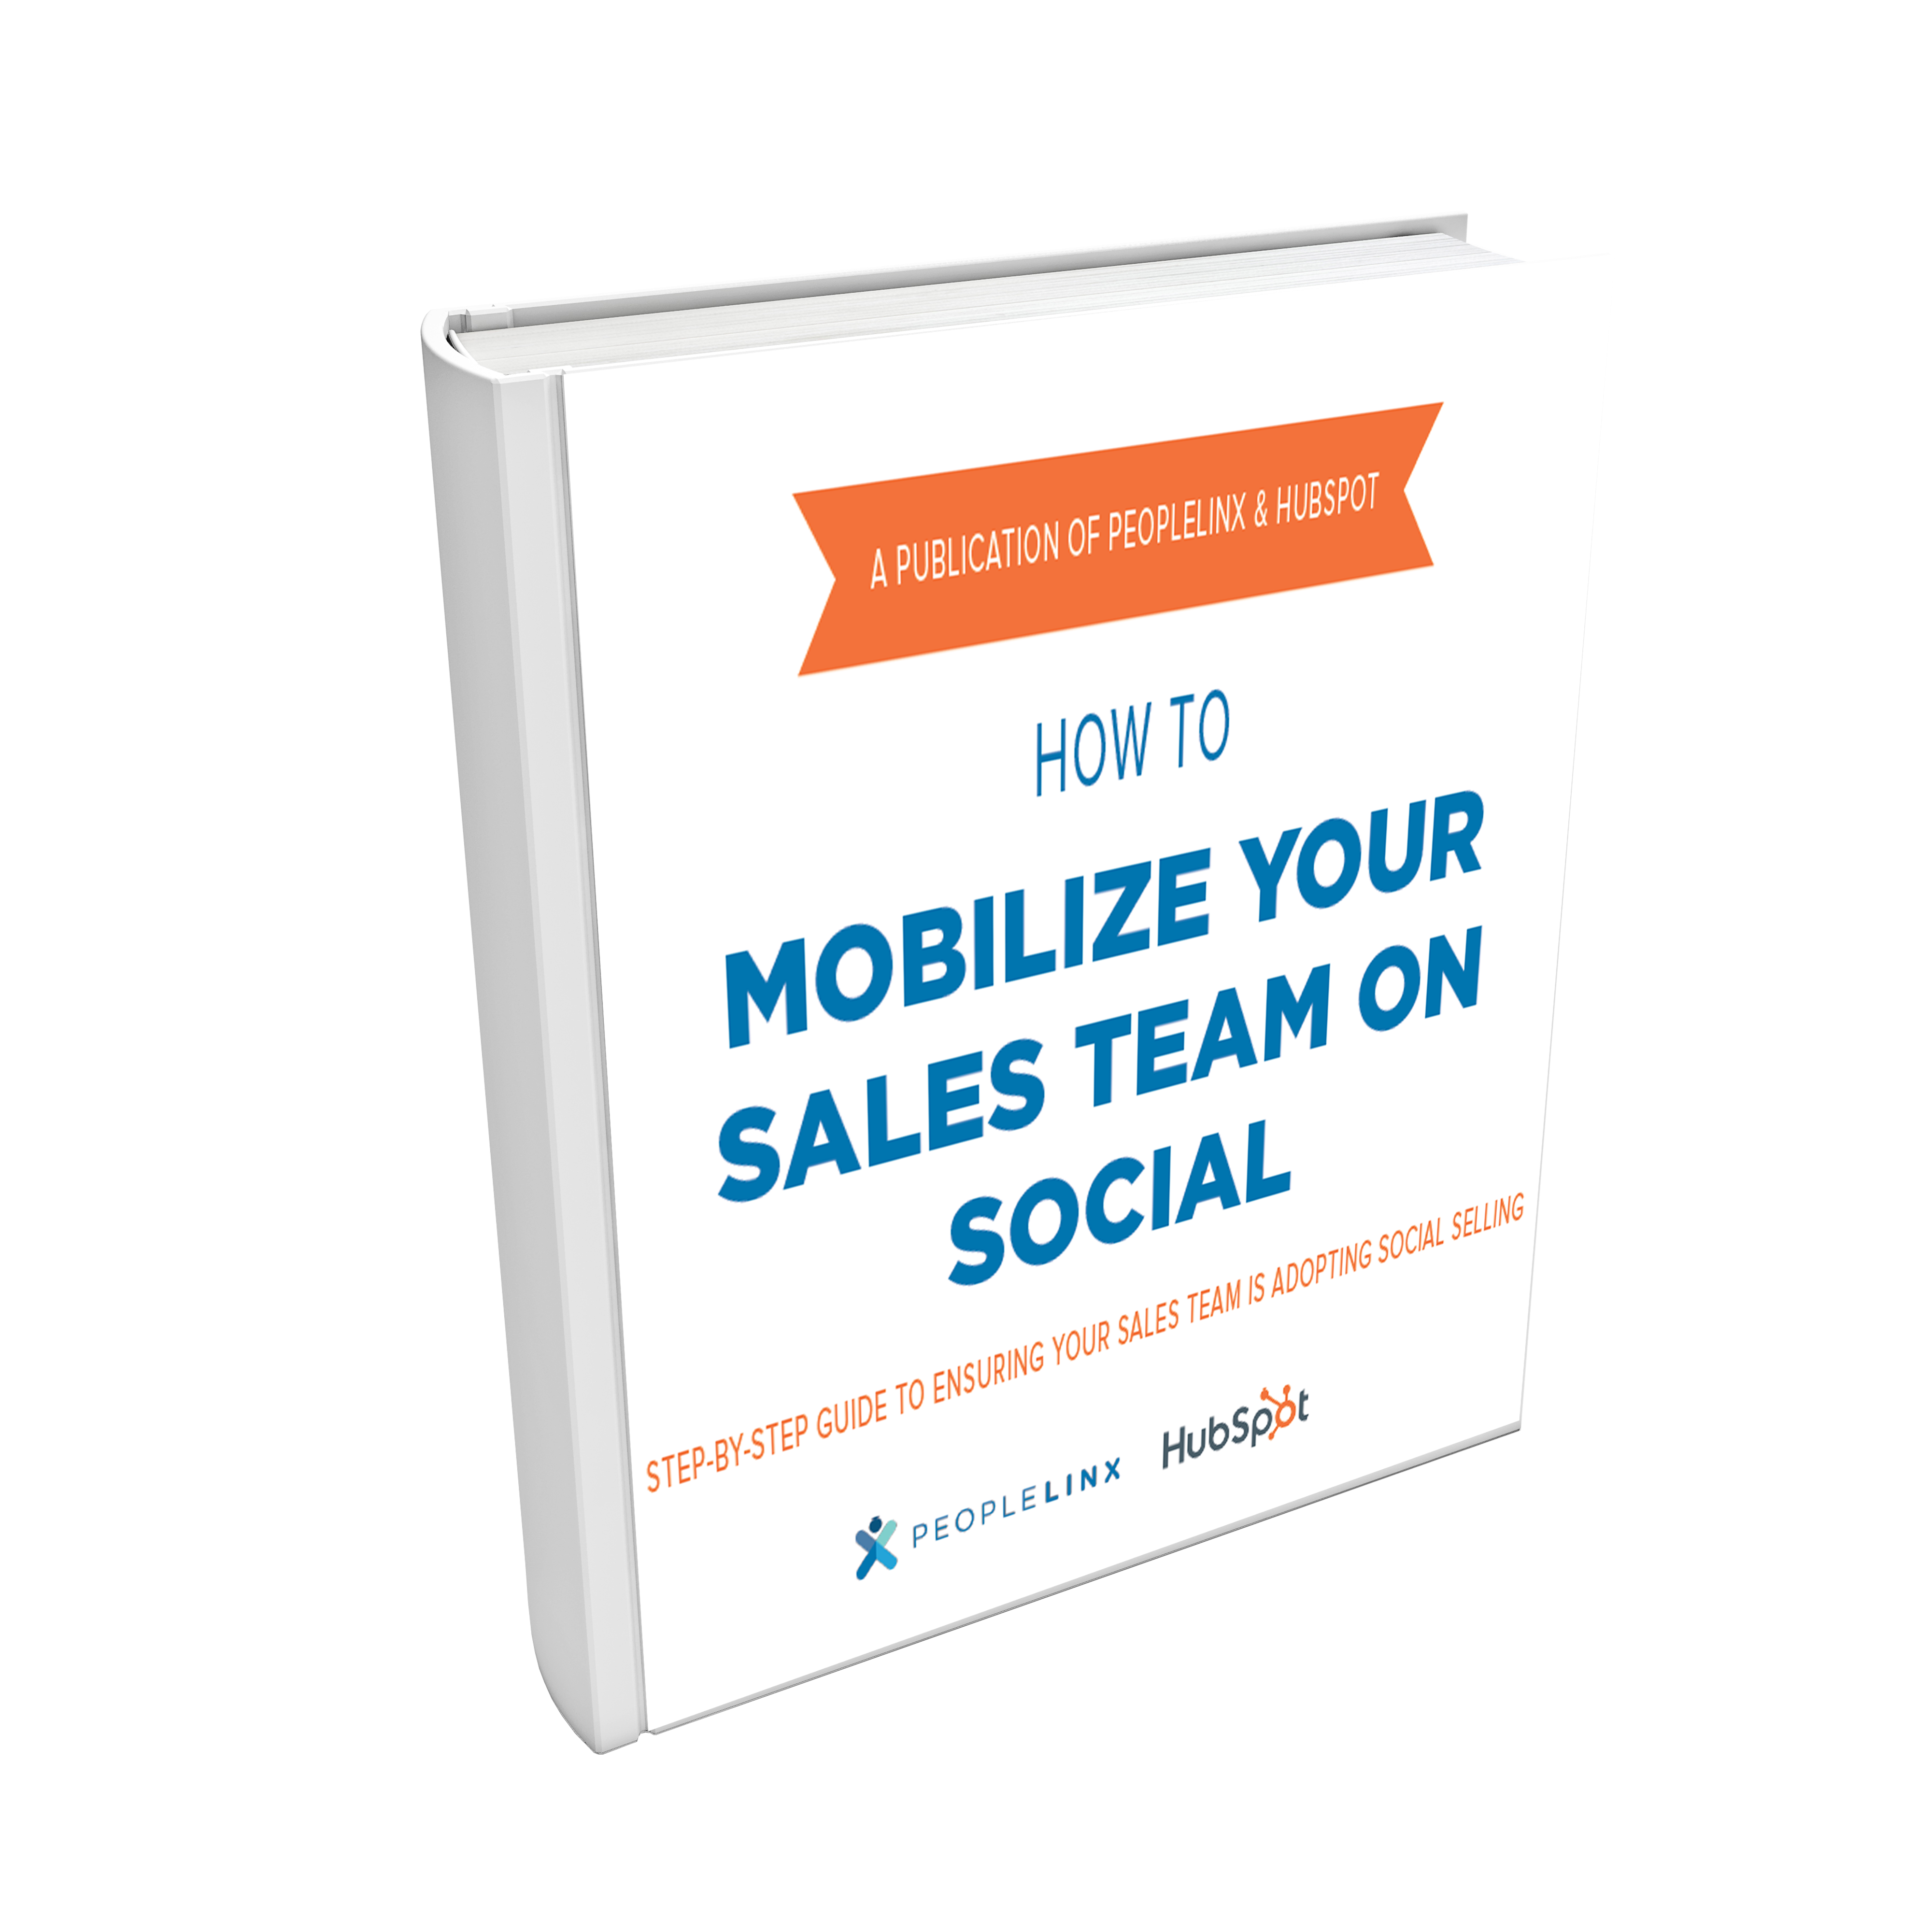 How to Mobilize Your Sales Team on Social